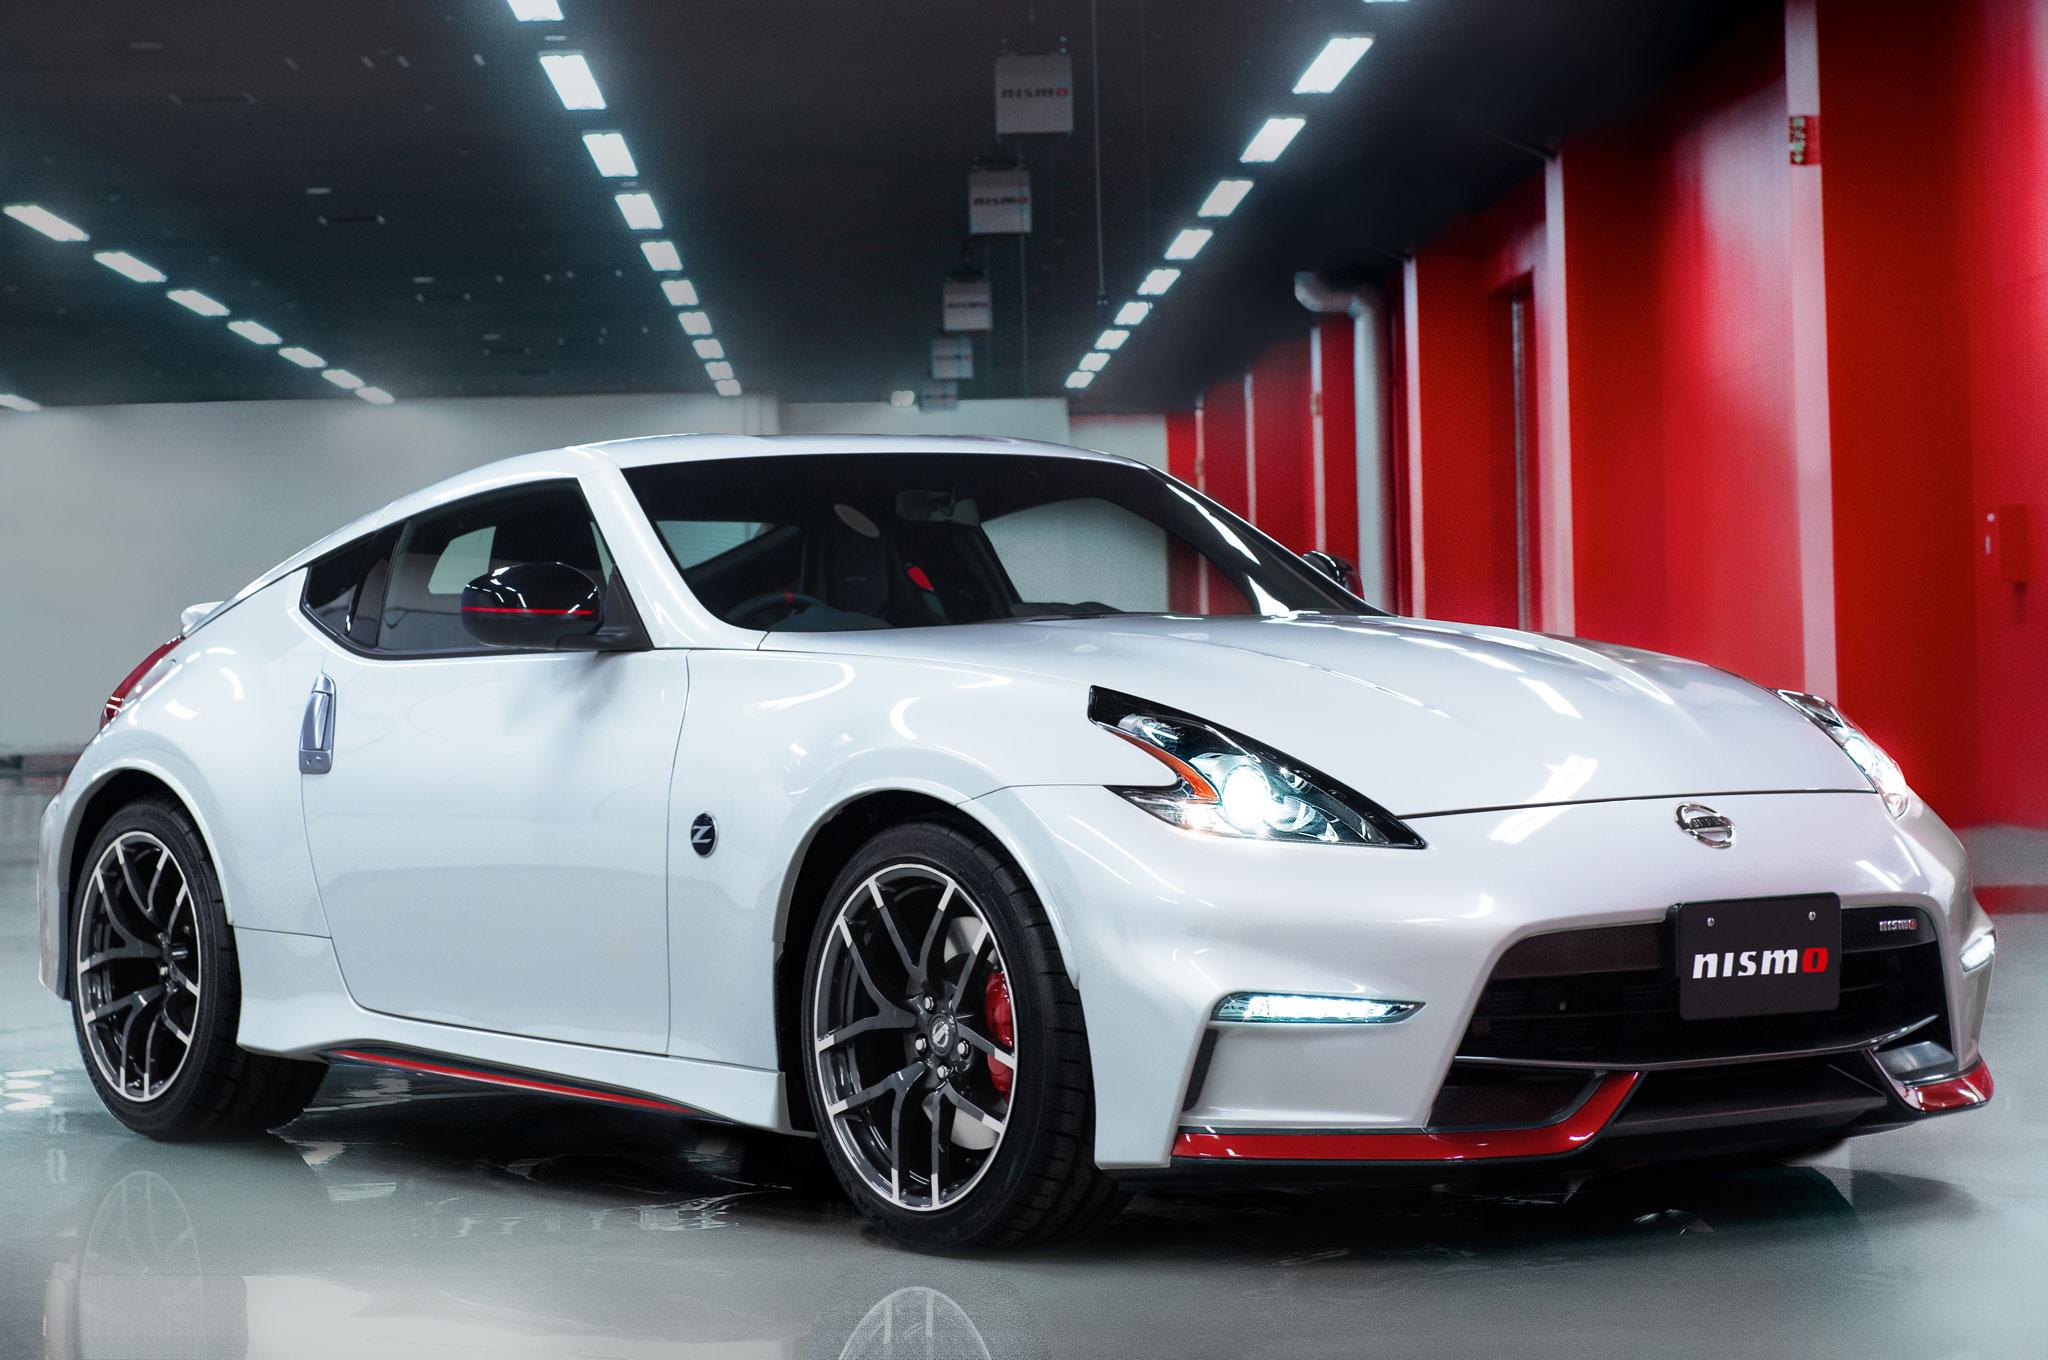 2015 Nissan 370Z NISMO Front Side View1